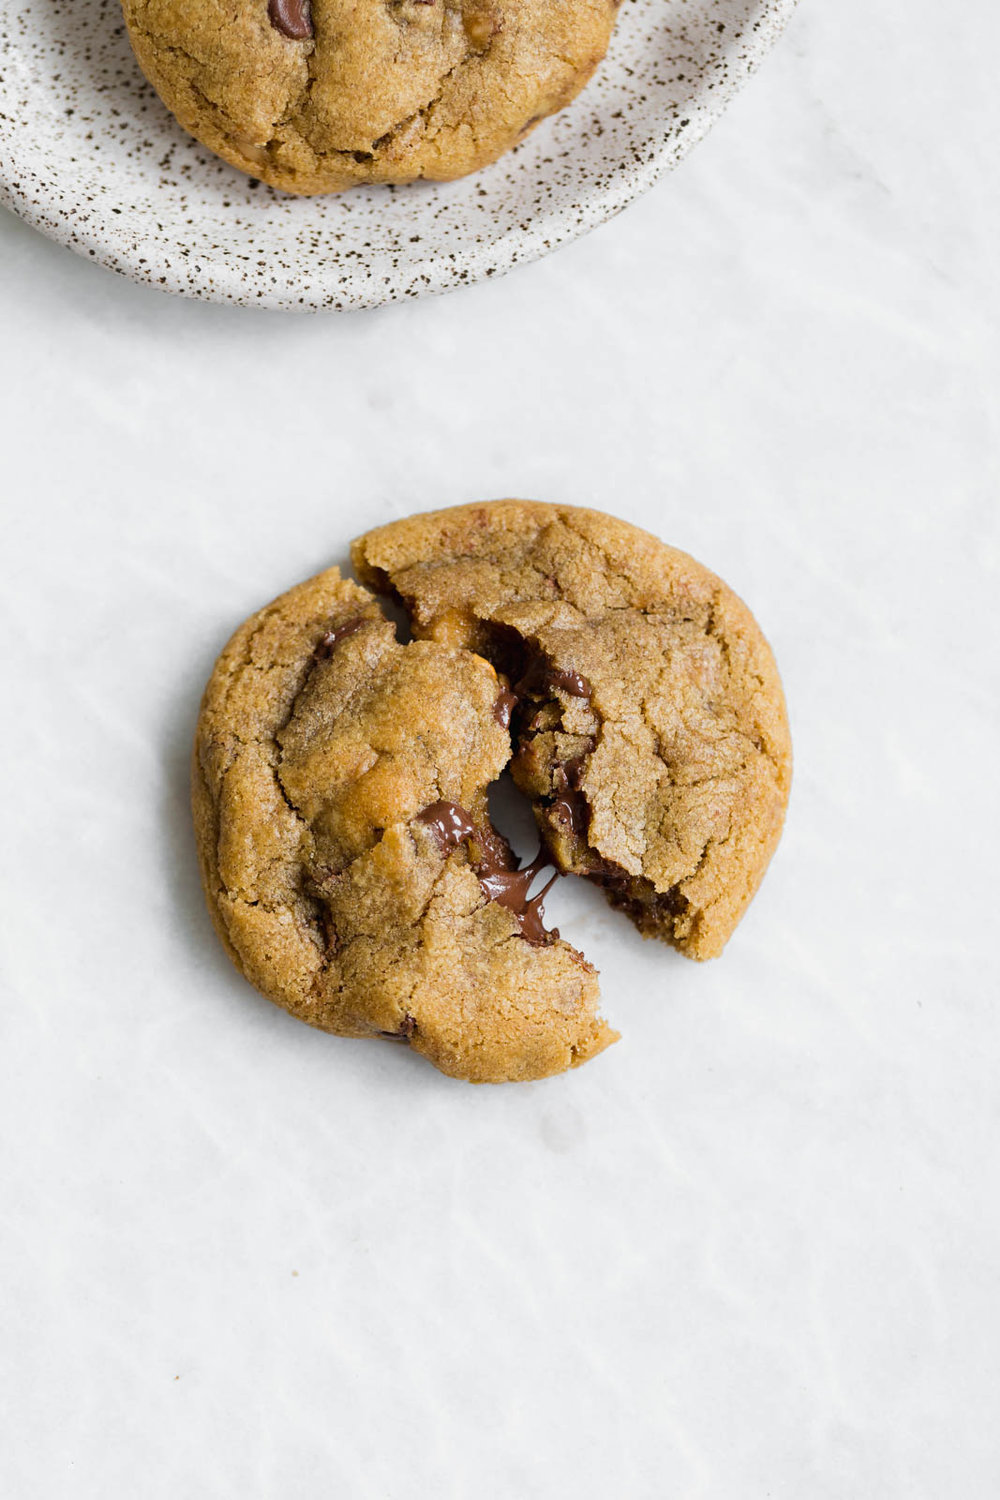 Keto Chocolate Chip Cookies - Active K